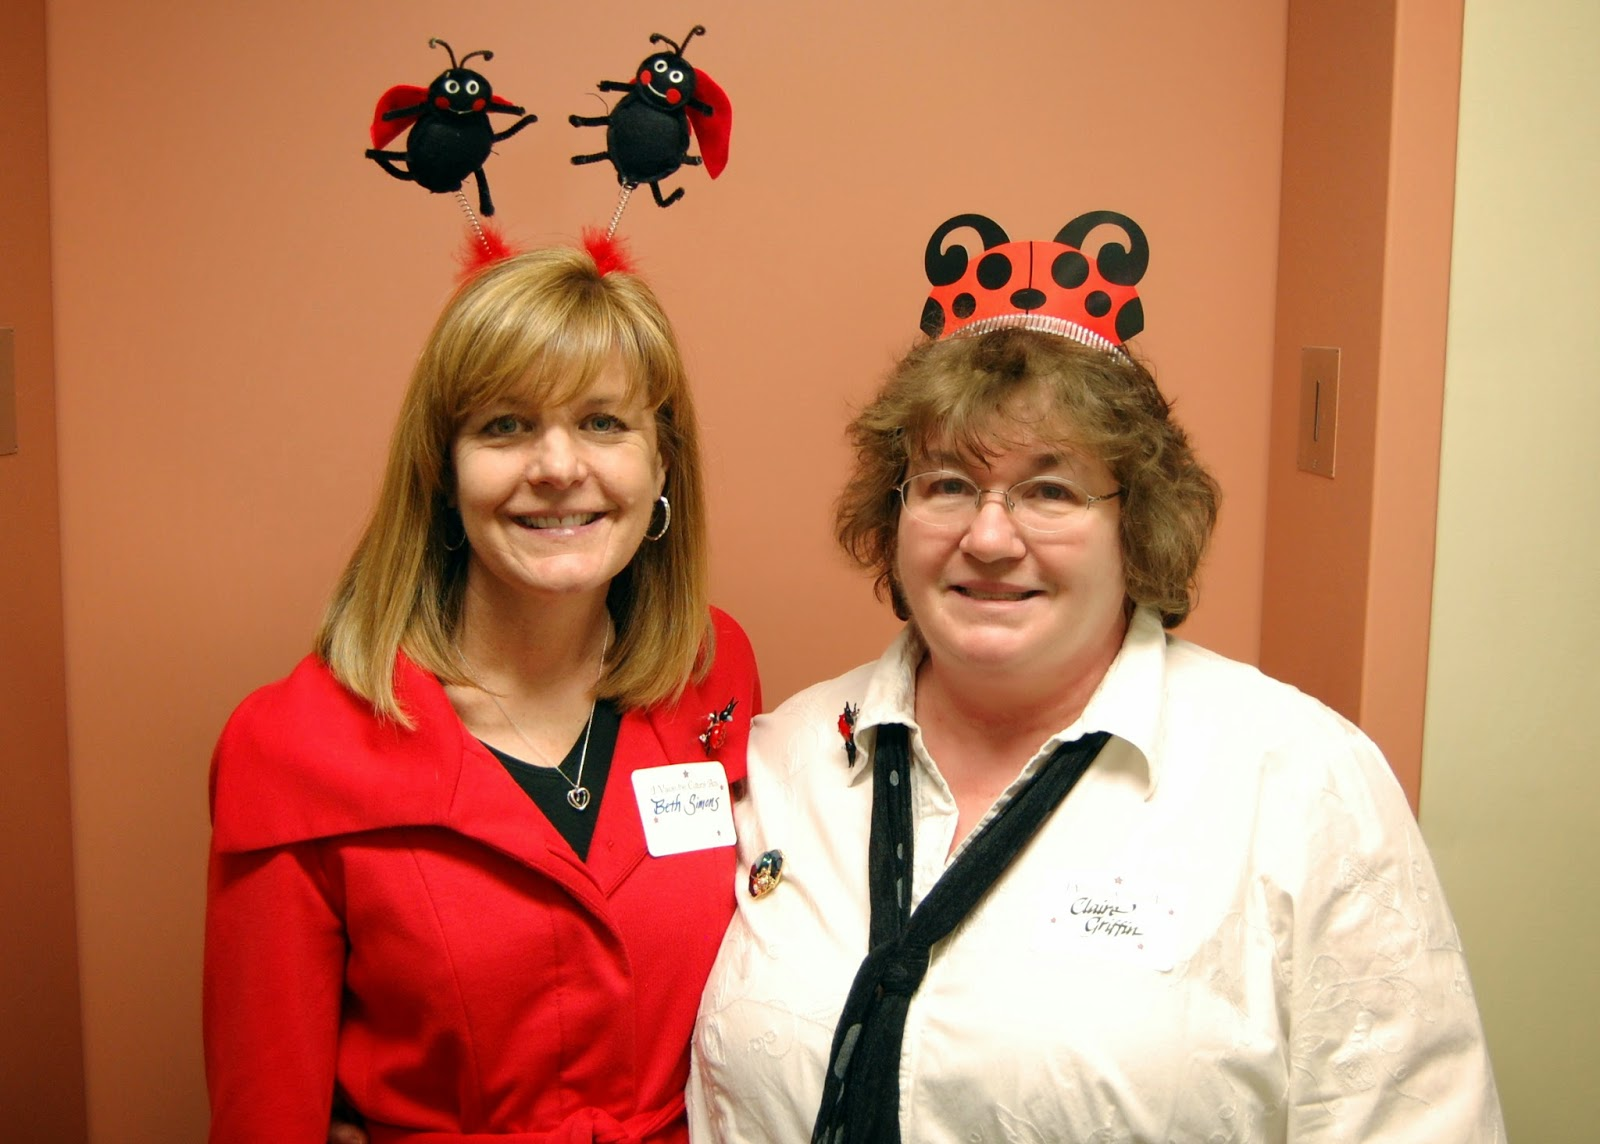 Good sports for Ladybug spots! Beth Simons on the left and Claire Griffin on the right